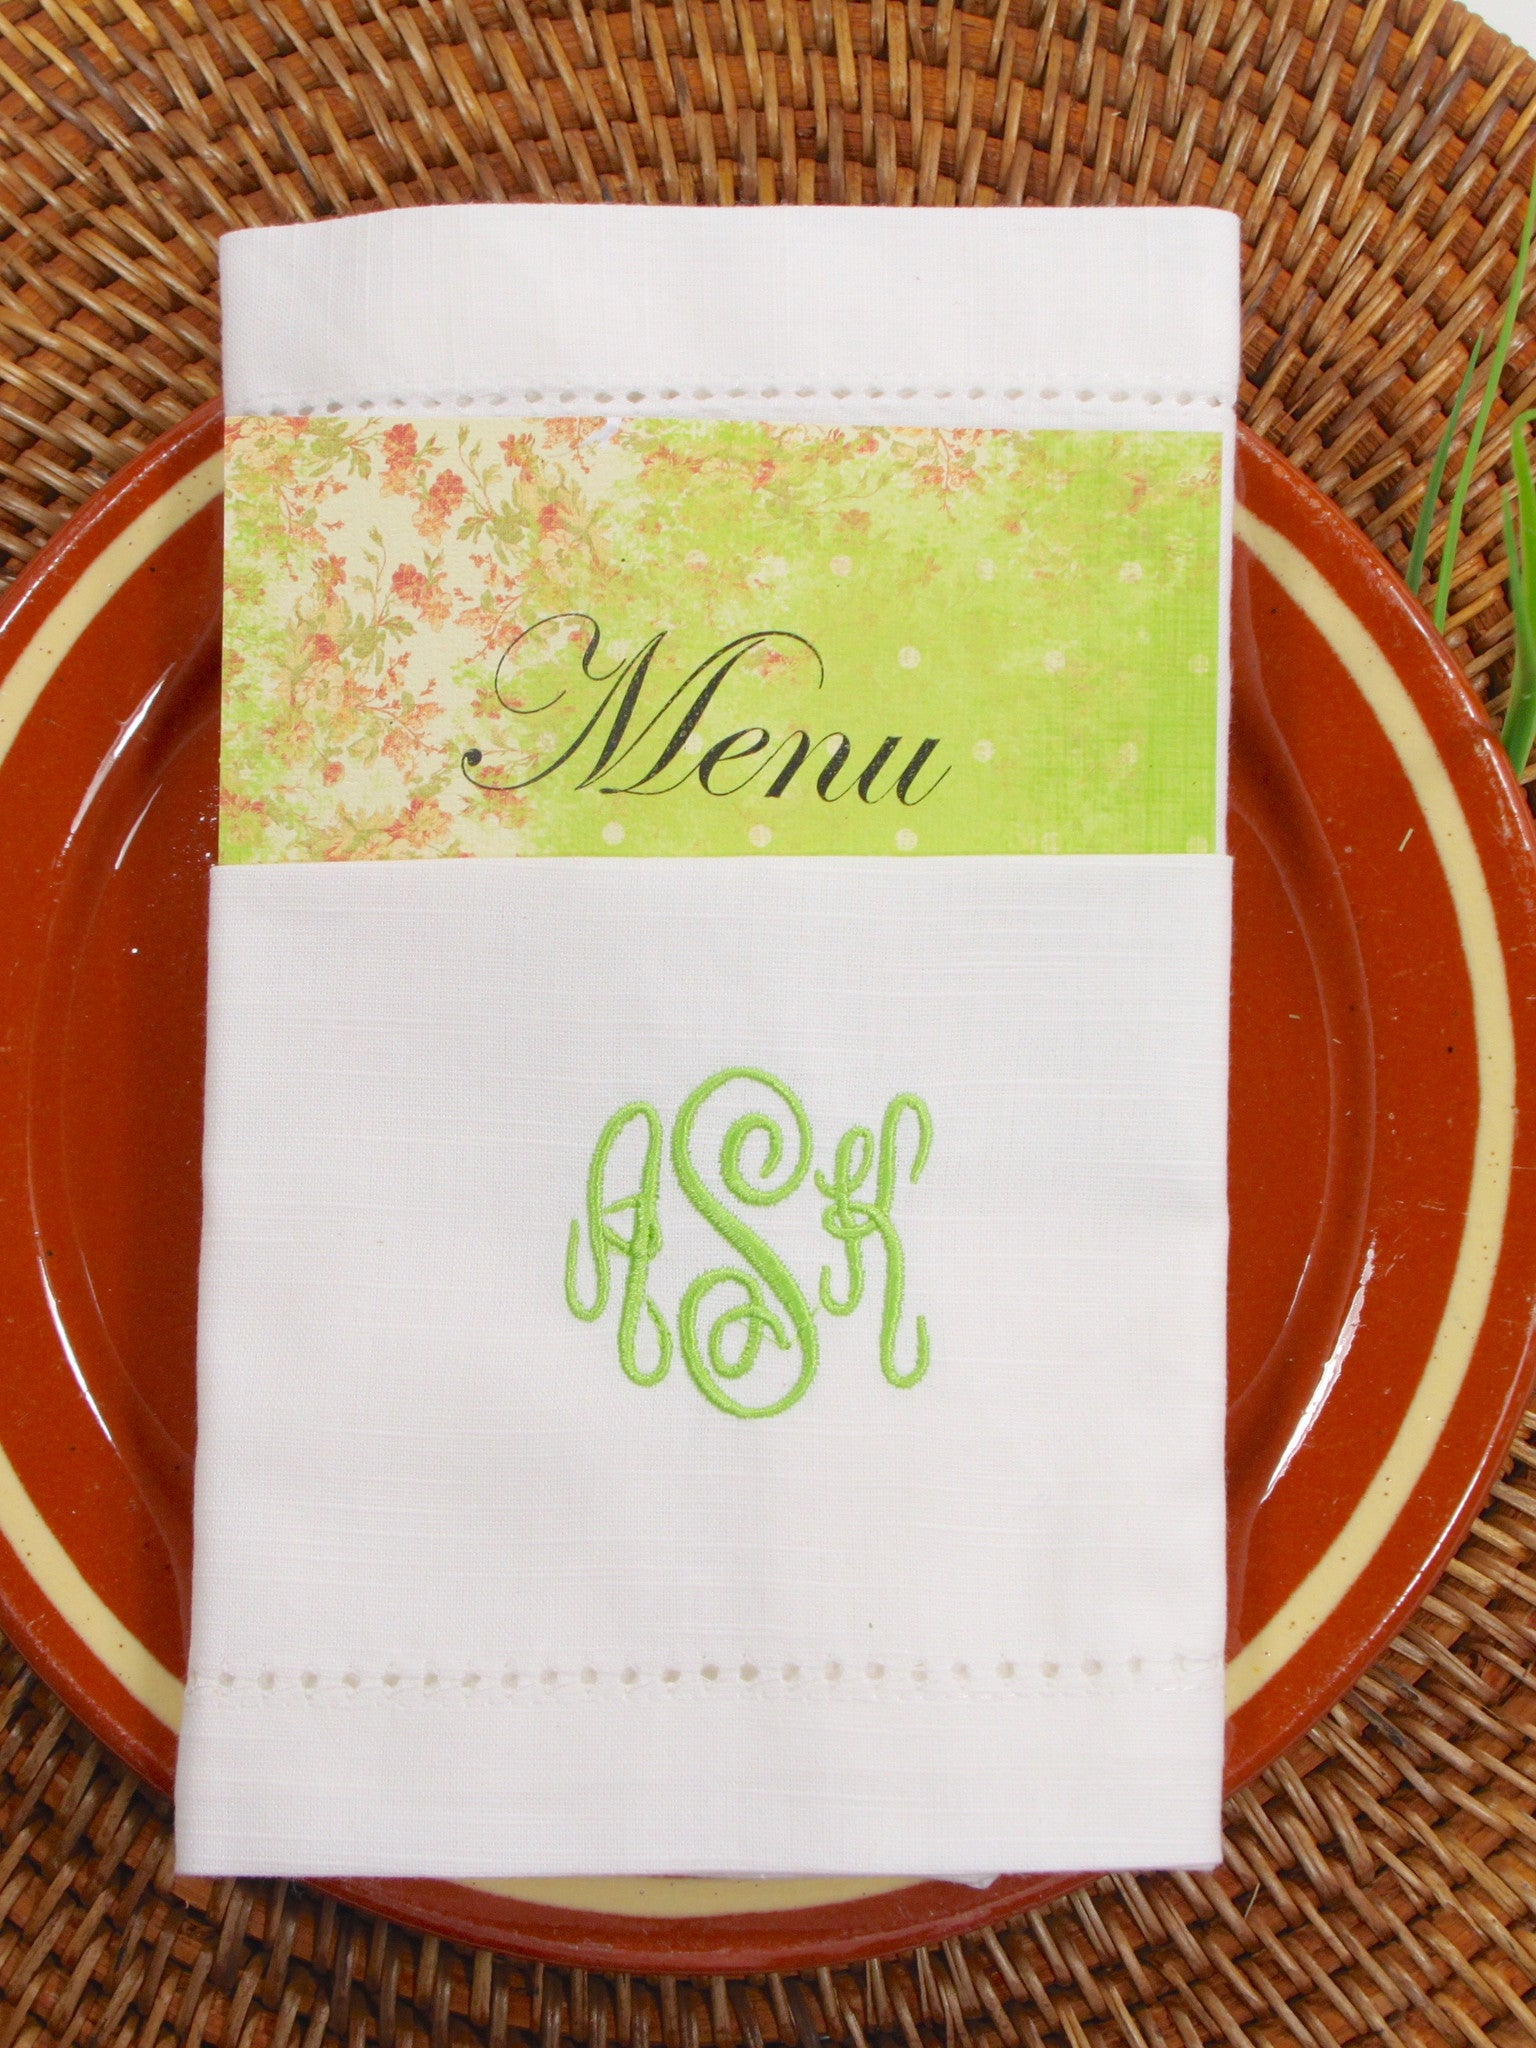 folded script wedding menu monogrammed embroidered cloth – white